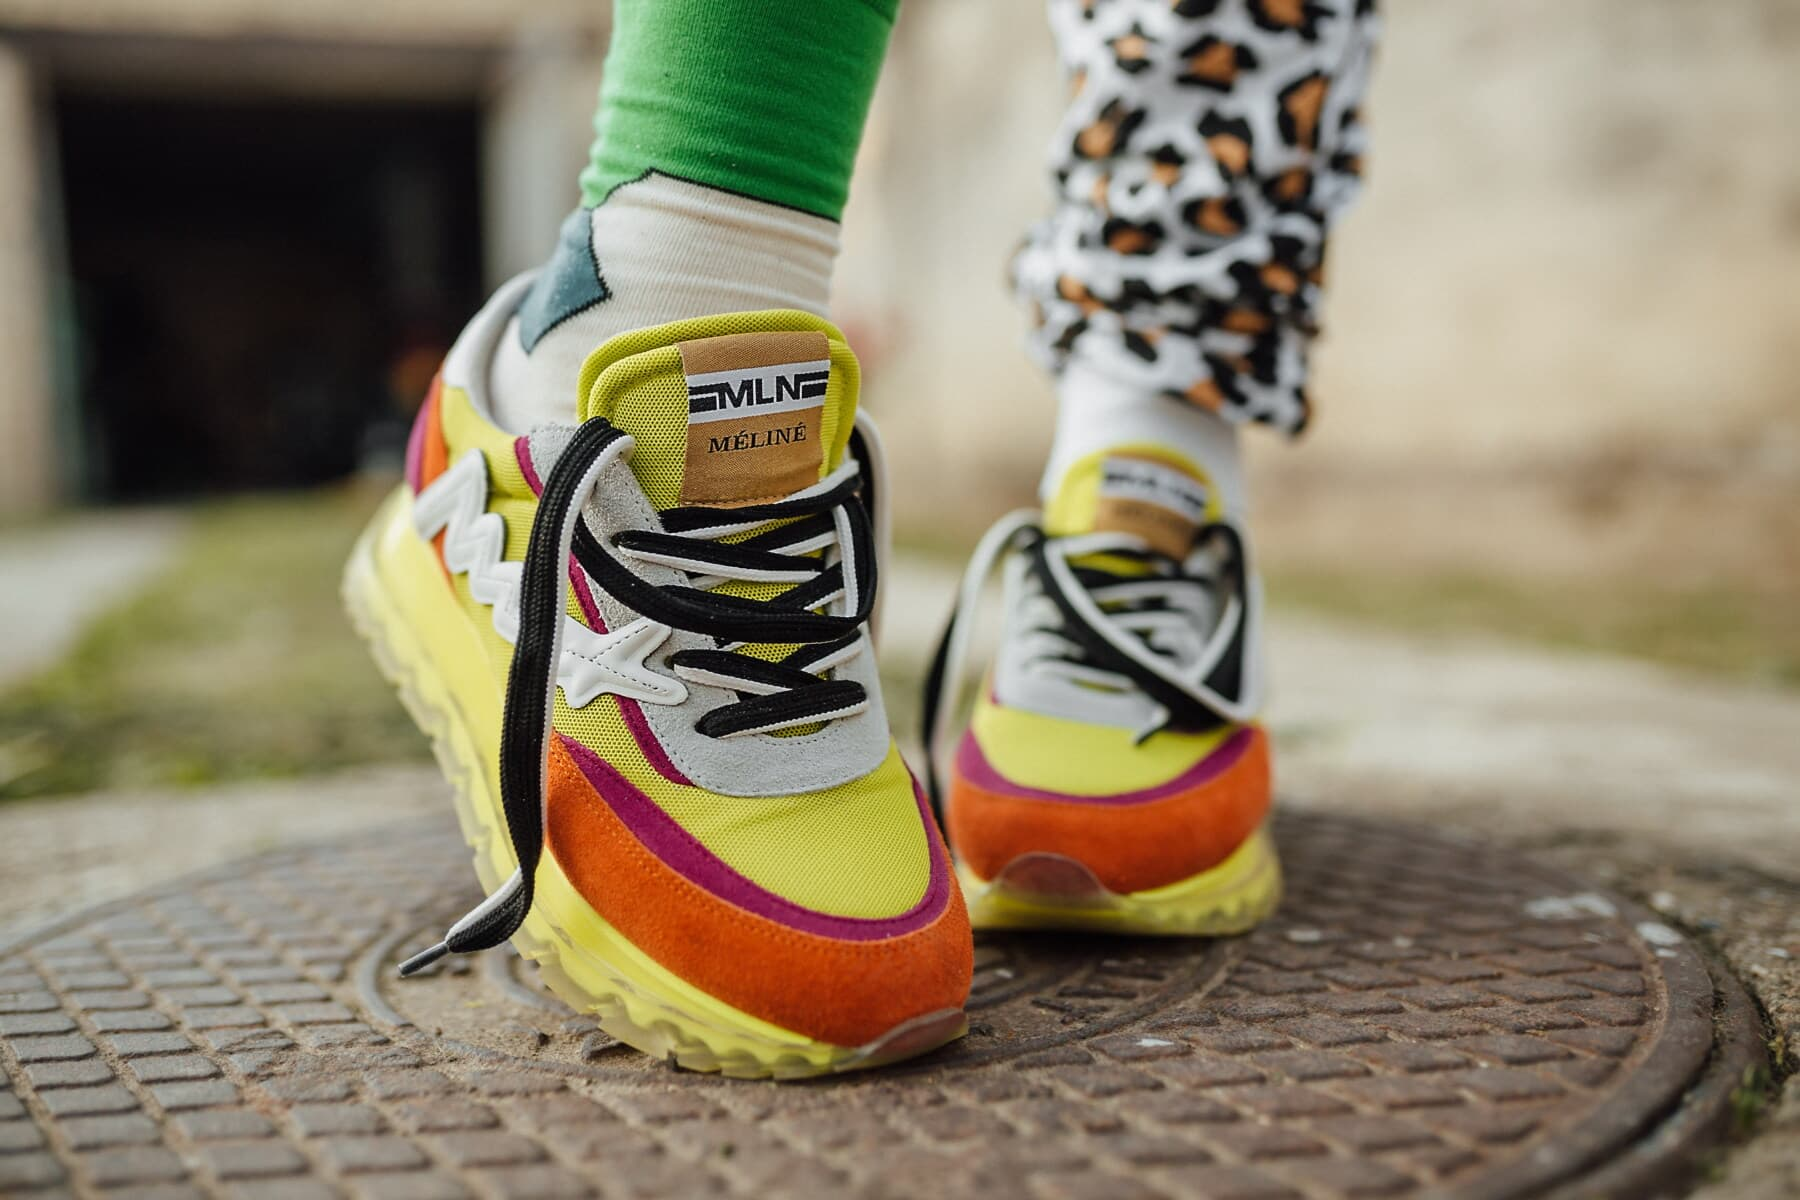 colorful, modern, sneakers, urban, pavement, manhole, foot, pair, clothing, shoe